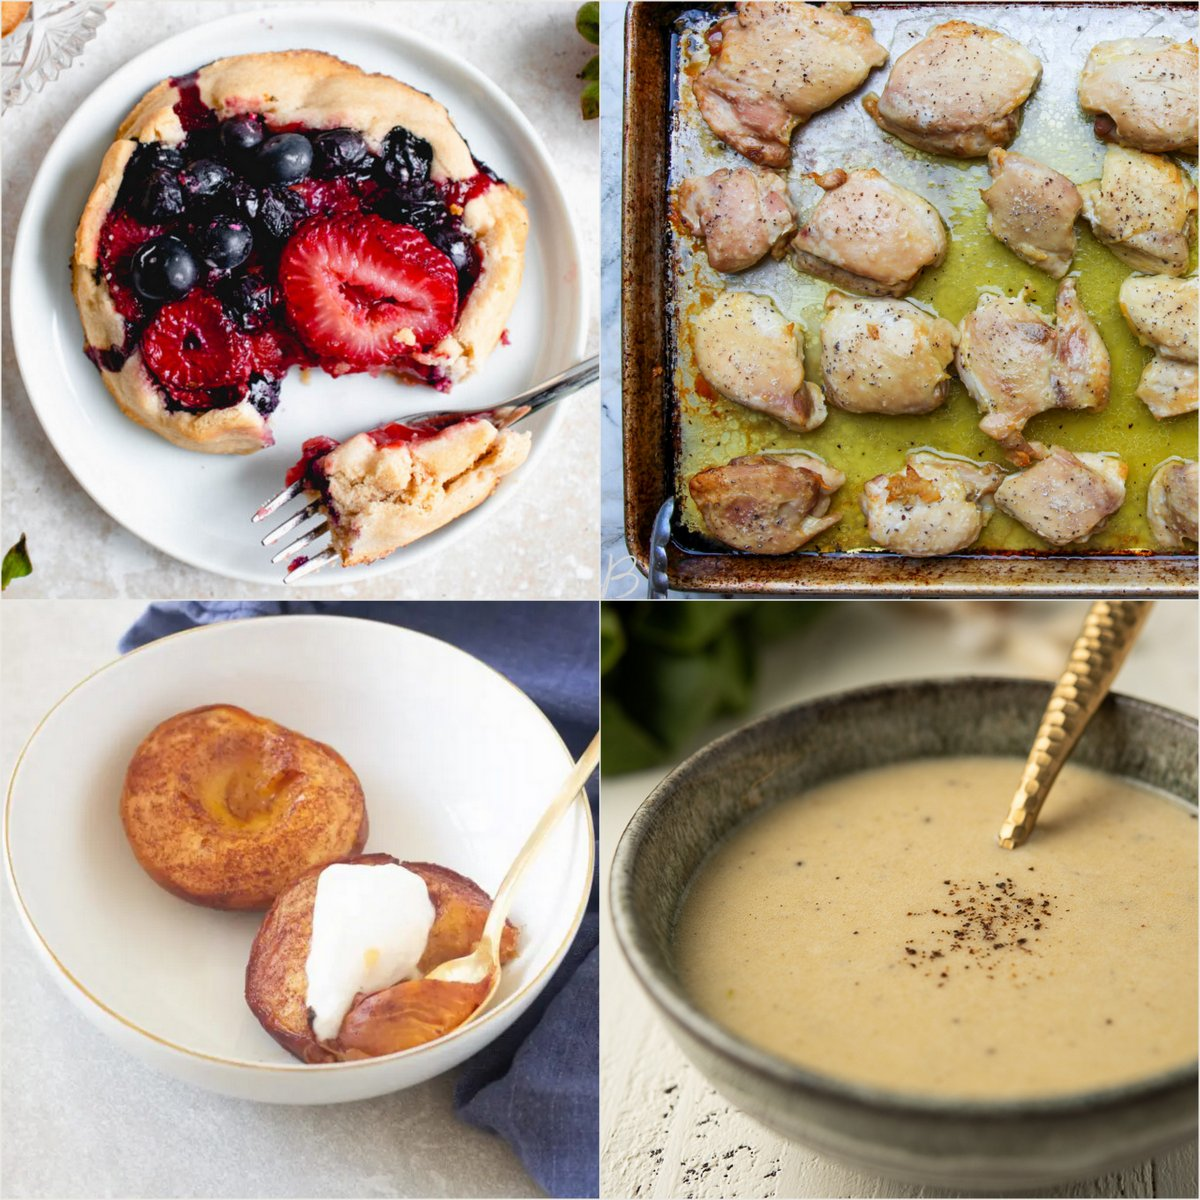 Paleo AIP Recipe Roundtable #377   Phoenix Helix - *Featured Recipes: Mixed Berry Galettes, Meal Prep Sheet Pan Chicken Thighs, Easy Baked Peaches, and Dairy-Free Caesar Dressing.